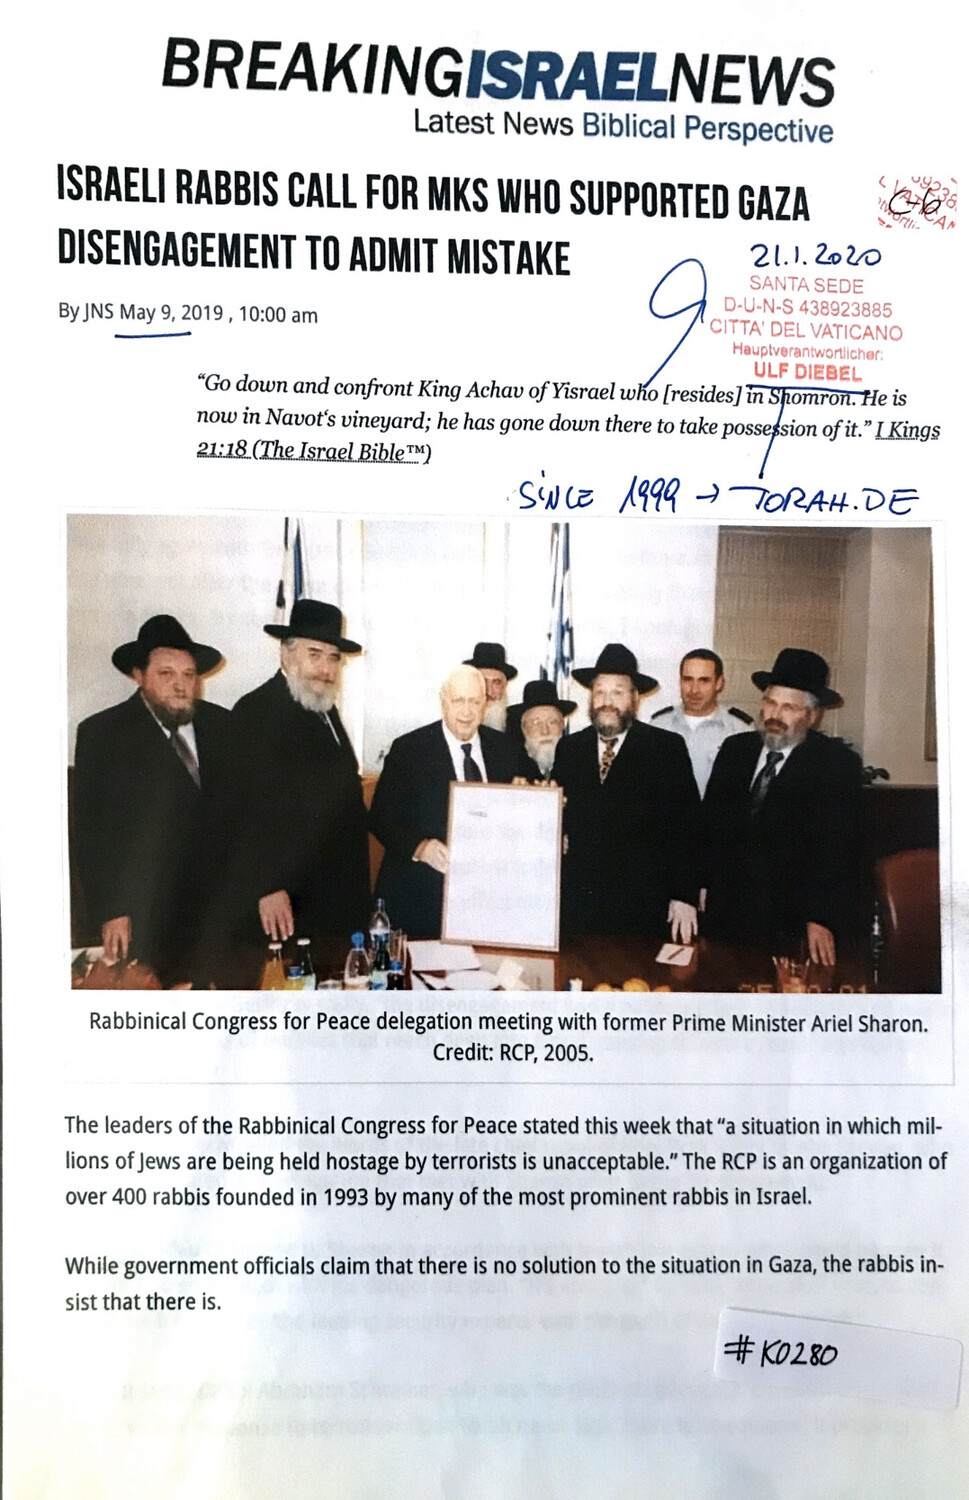 #K0280 l Breaking Israel News - Israeli Rabbis calls for Mks who supported Gaza disengagement to admit mistake